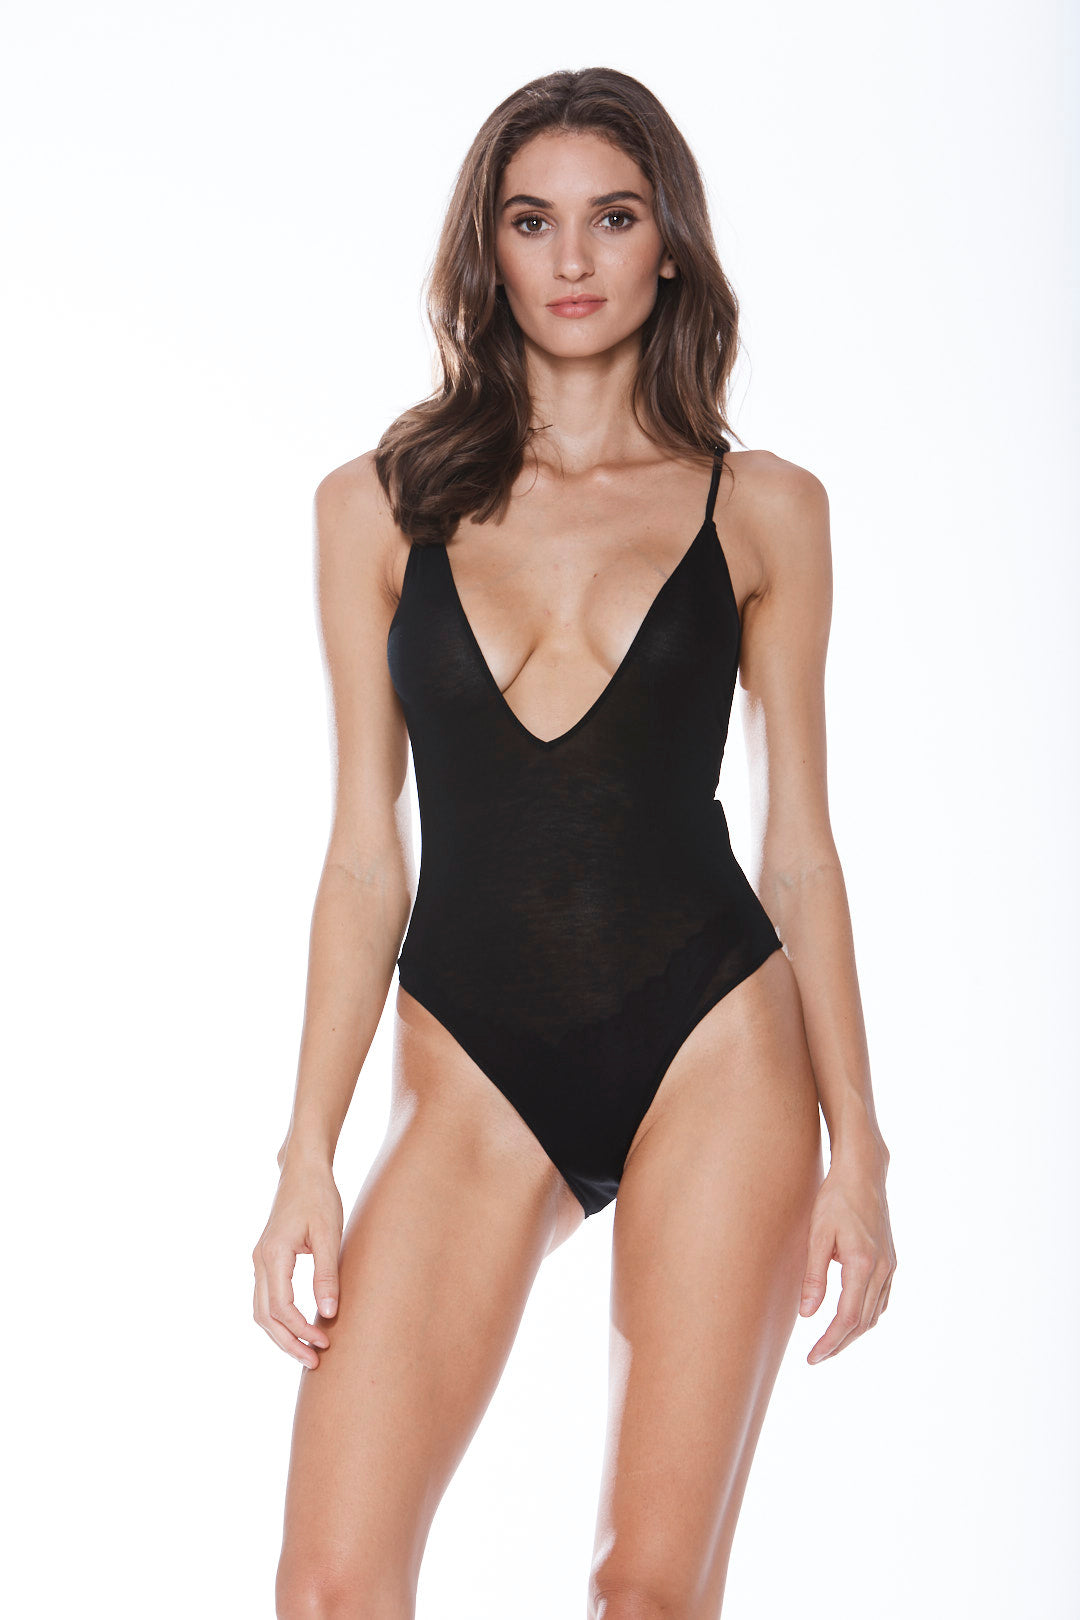 Dave-O Bodysuit - Black